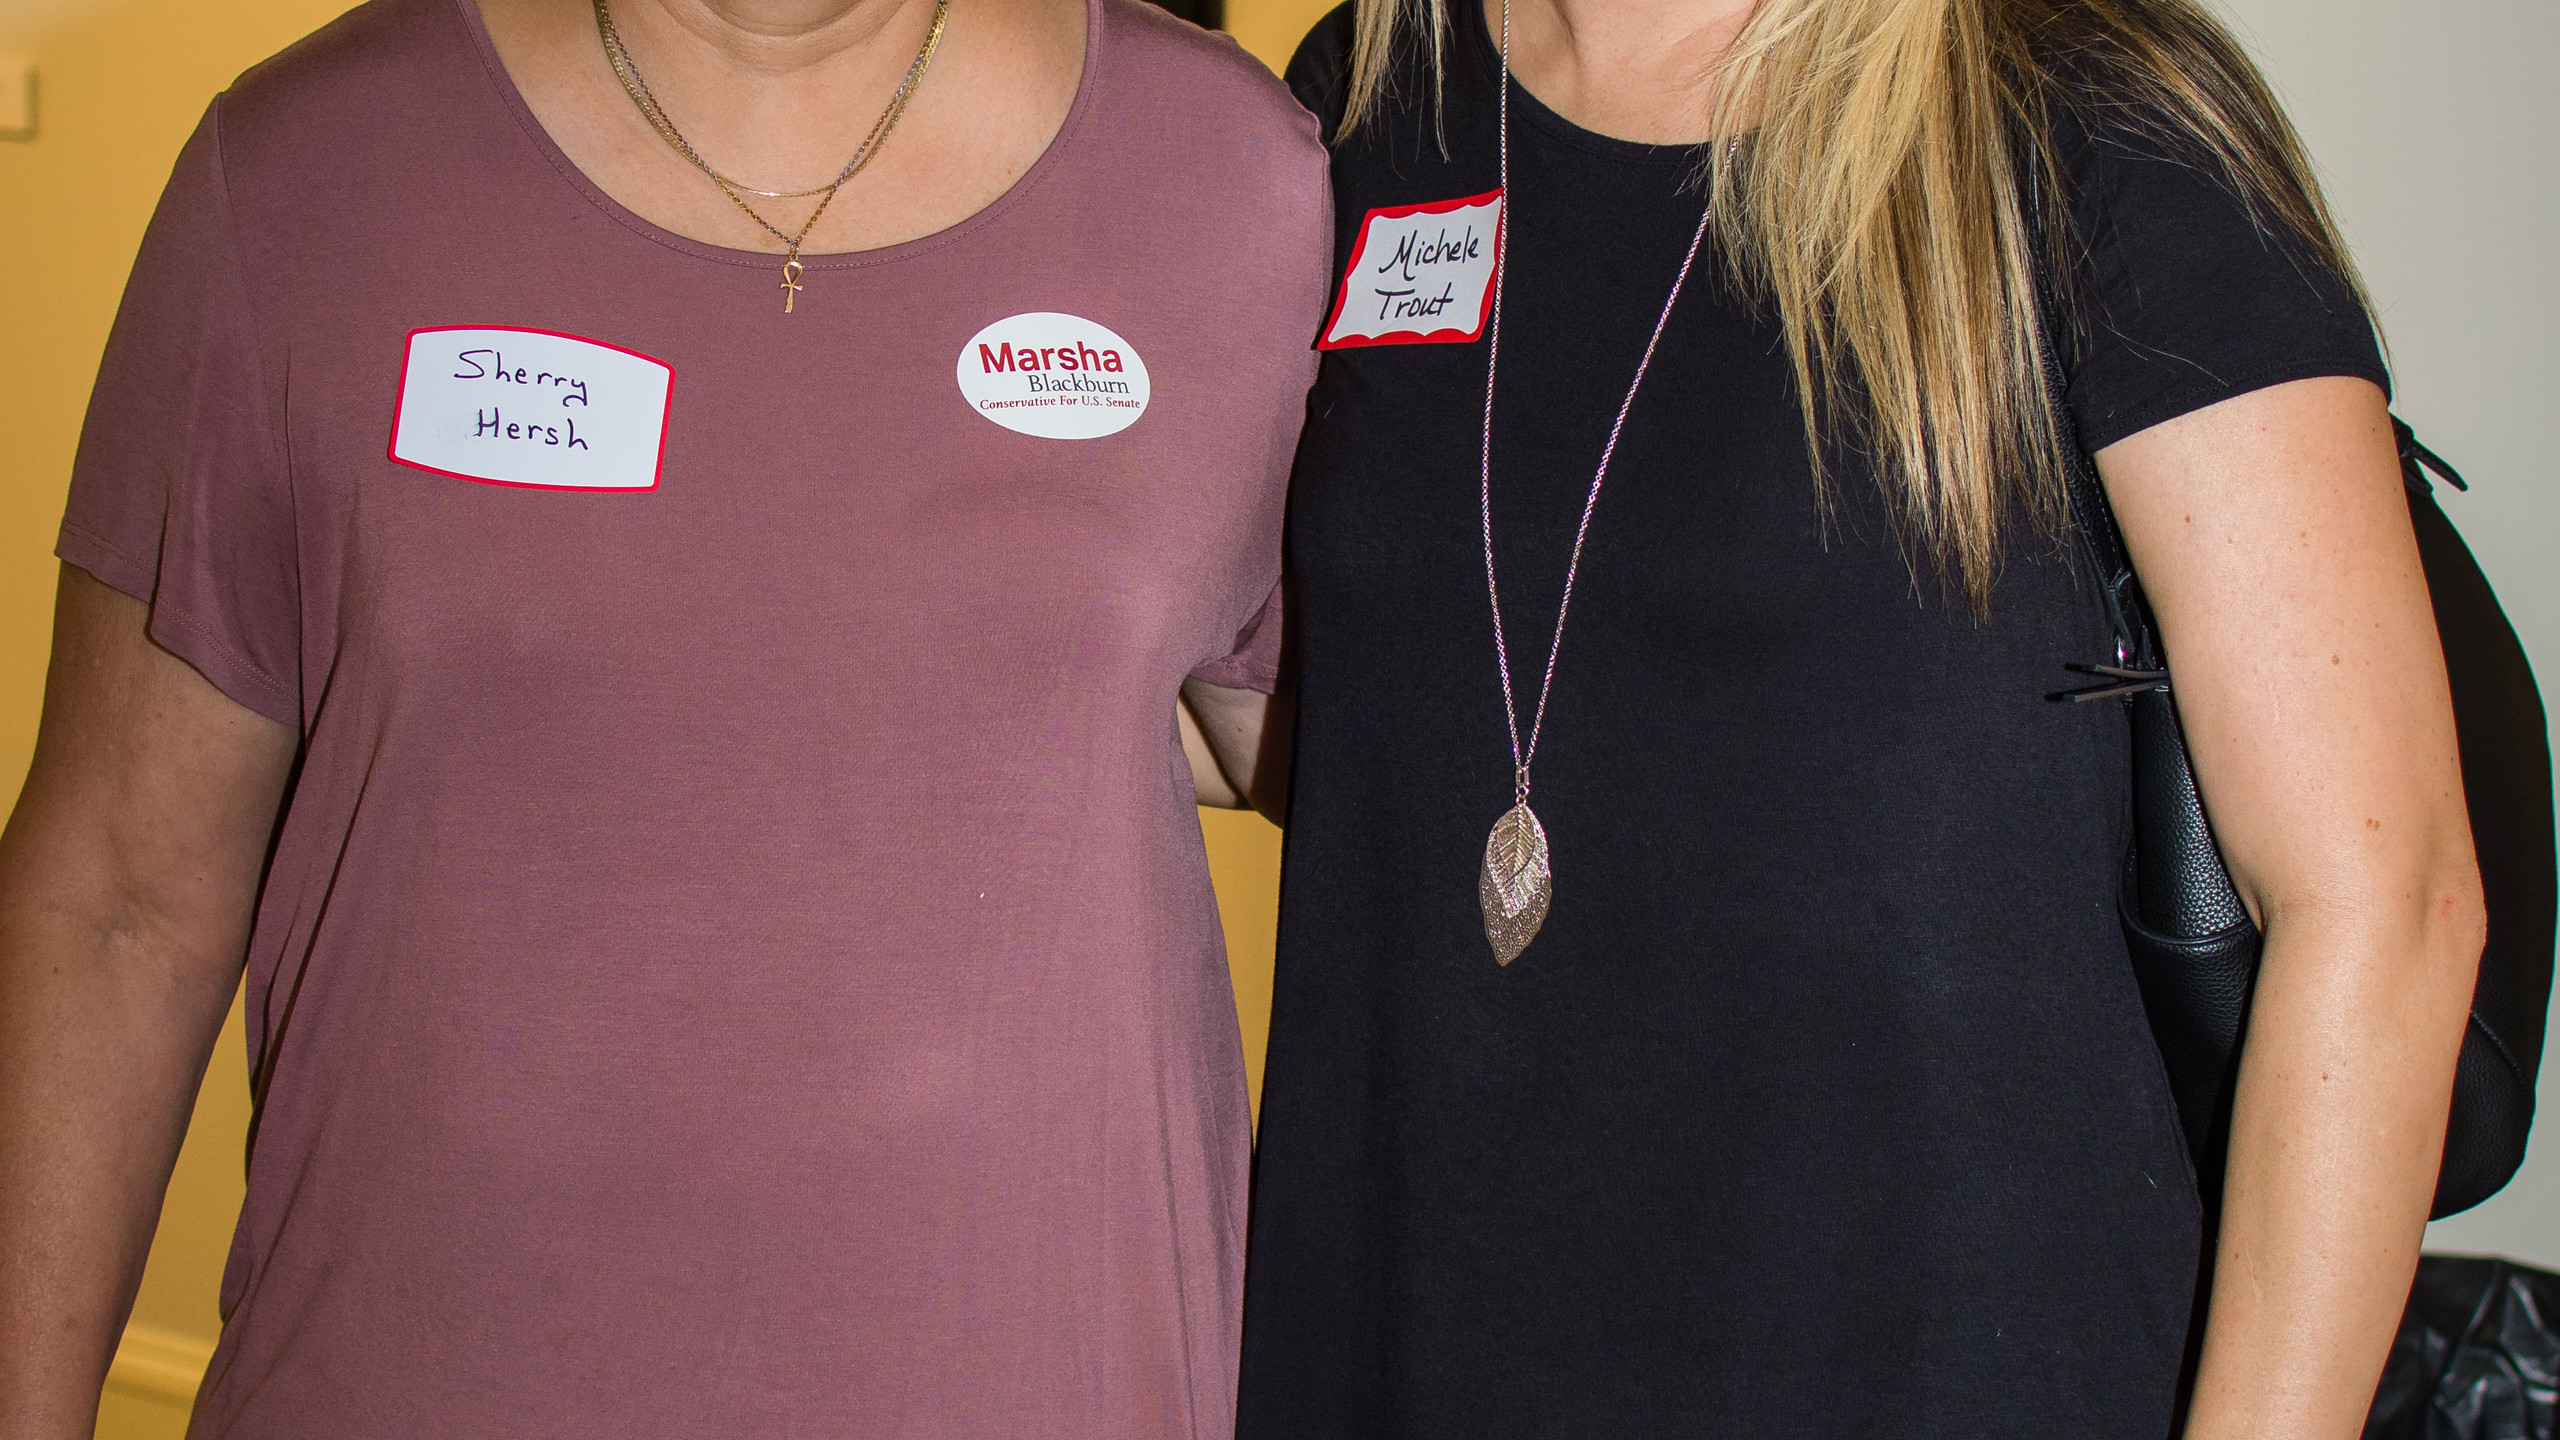 Sherry Hersh and Michele Trout